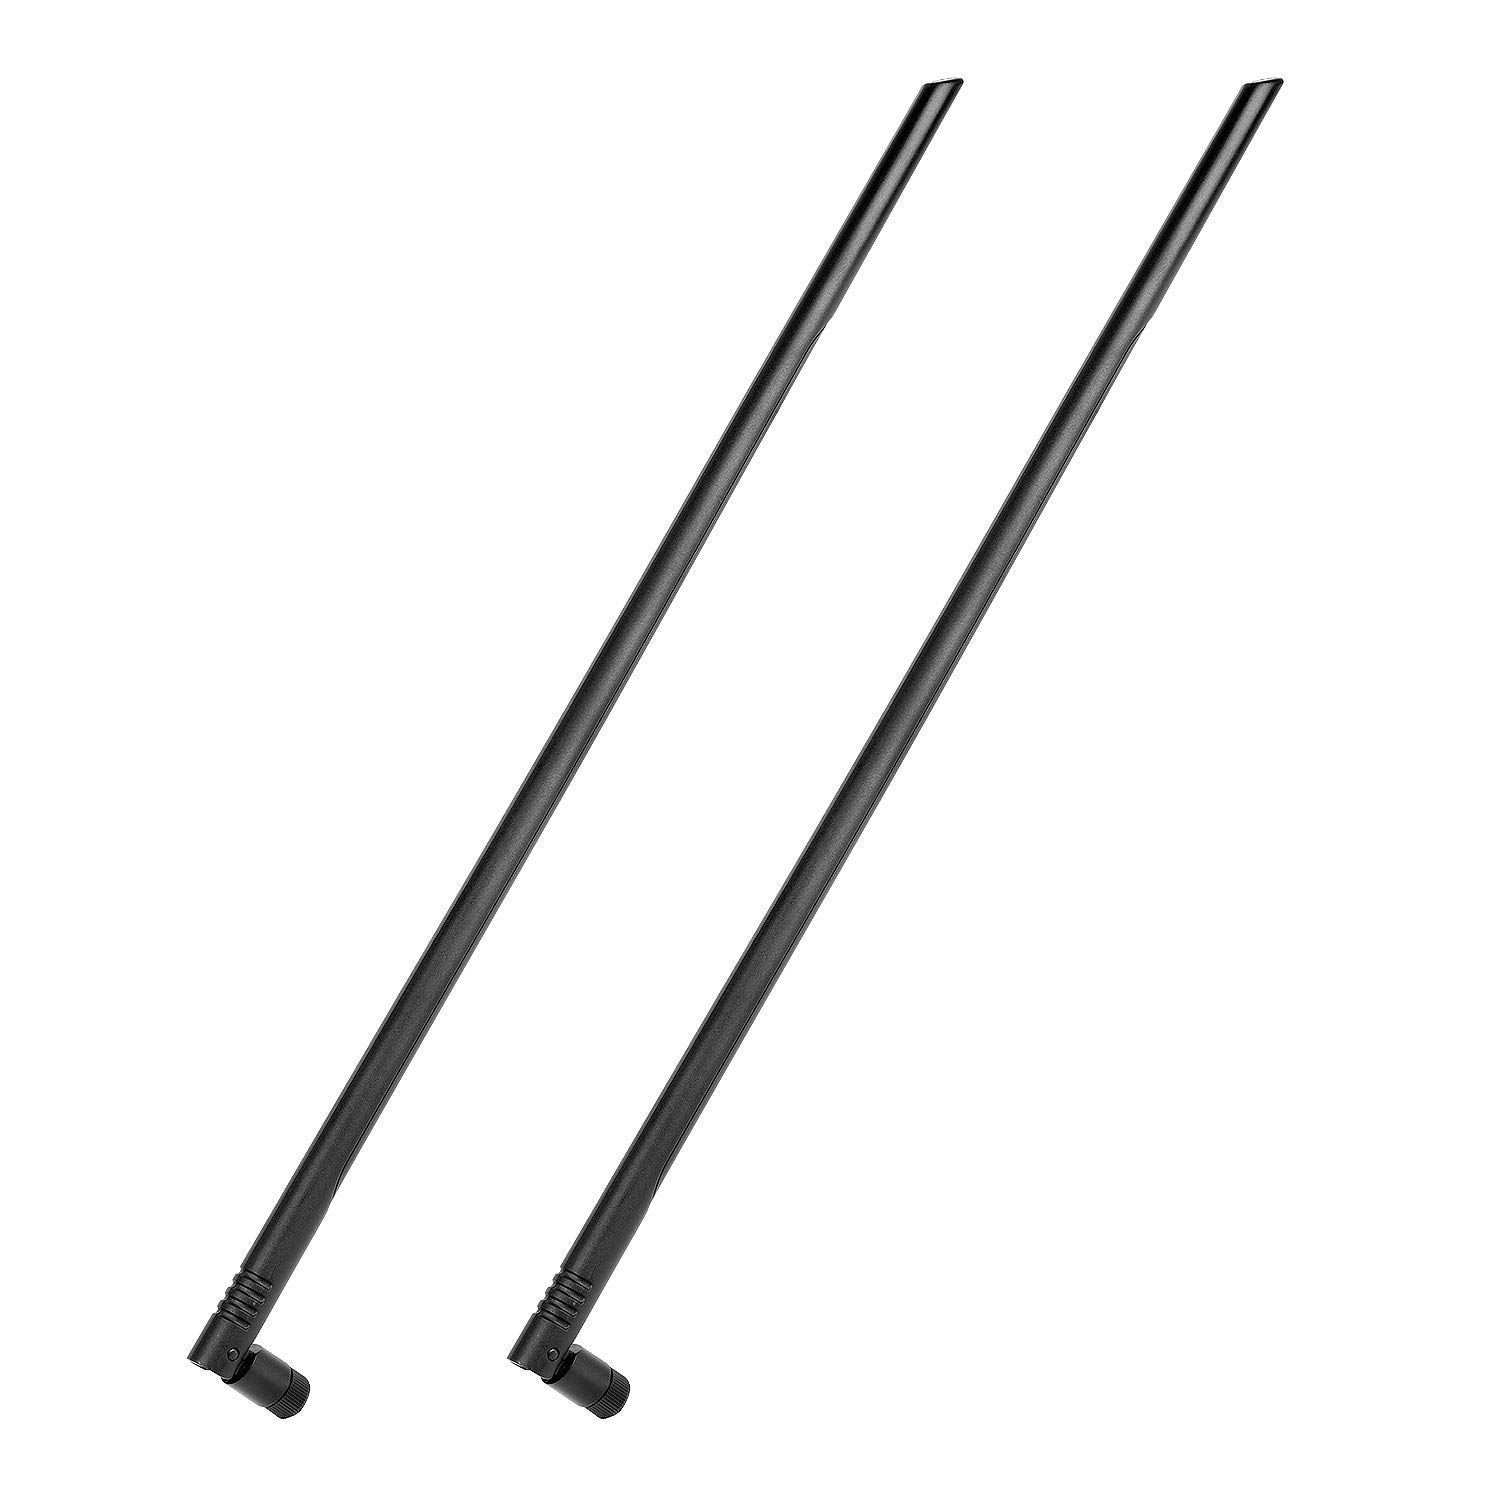 1 Pack, 7 dBi Pig Tail Antenna Importer520 Wi-Fi RP SMA Wireless Antenna//Router Signal Extend Range Booster